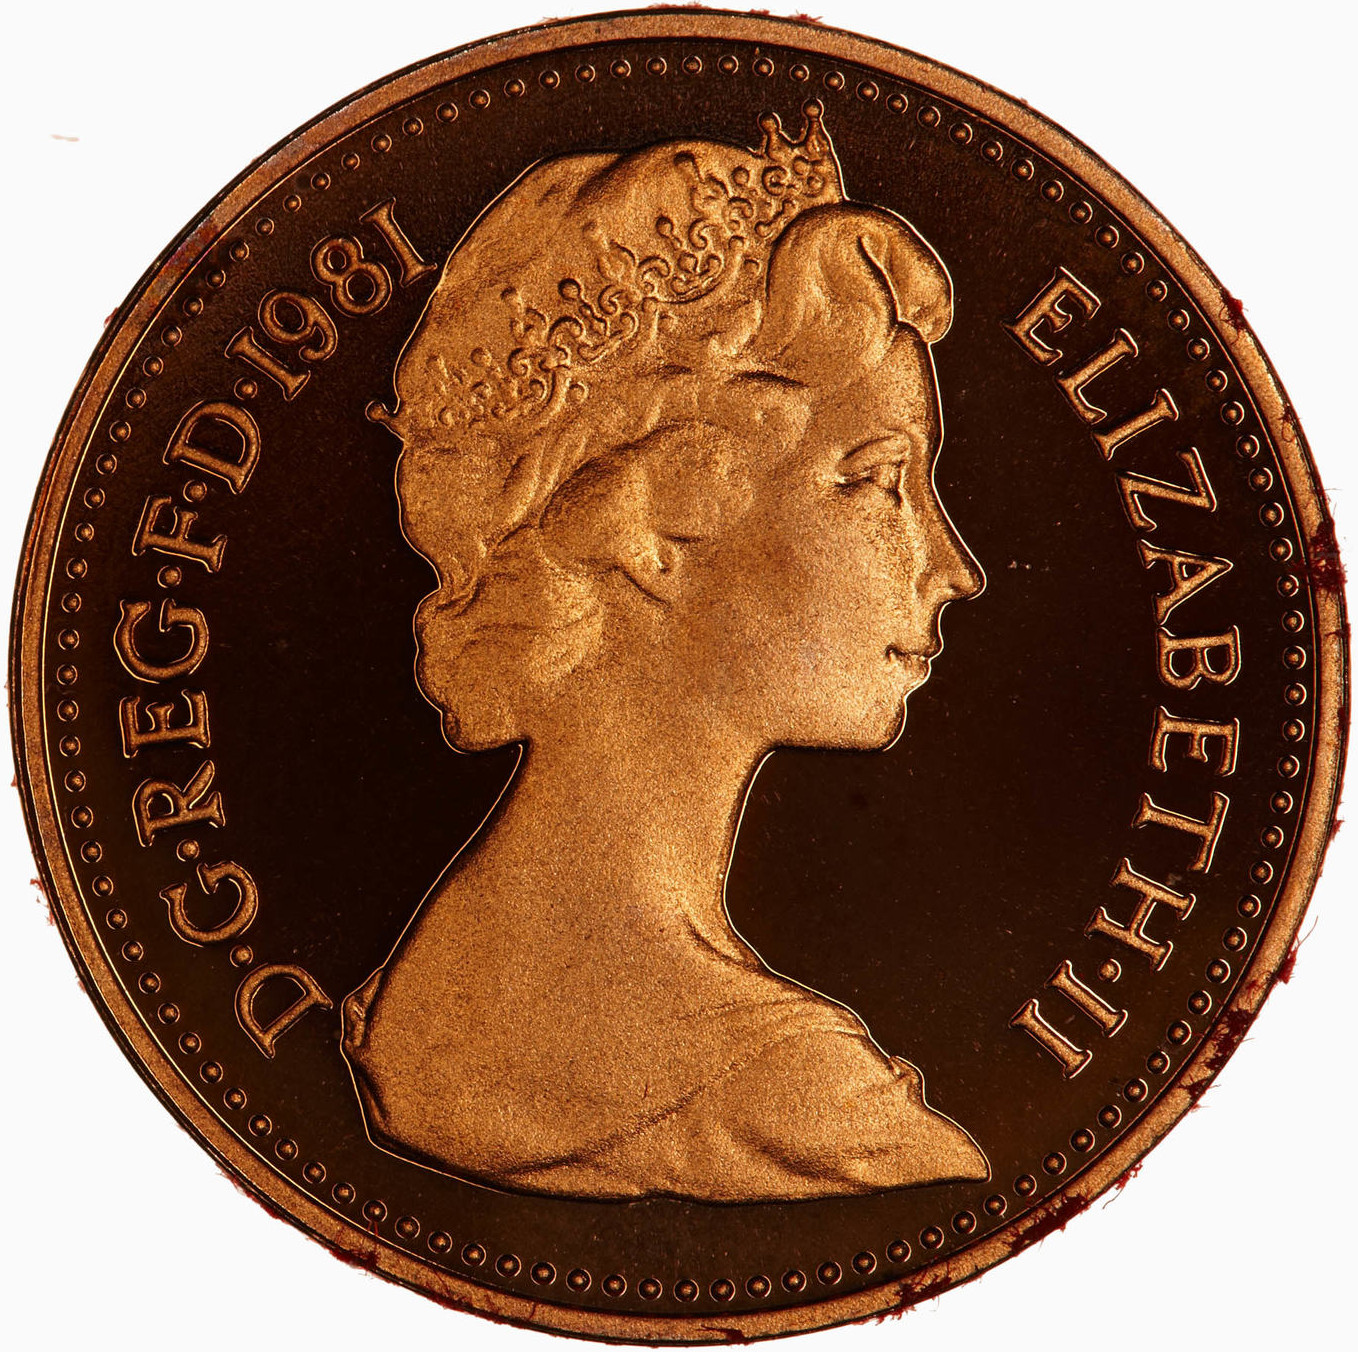 Half Penny 1981: Photo Proof Coin - 1/2 New Penny, Elizabeth II, Great Britain, 1981